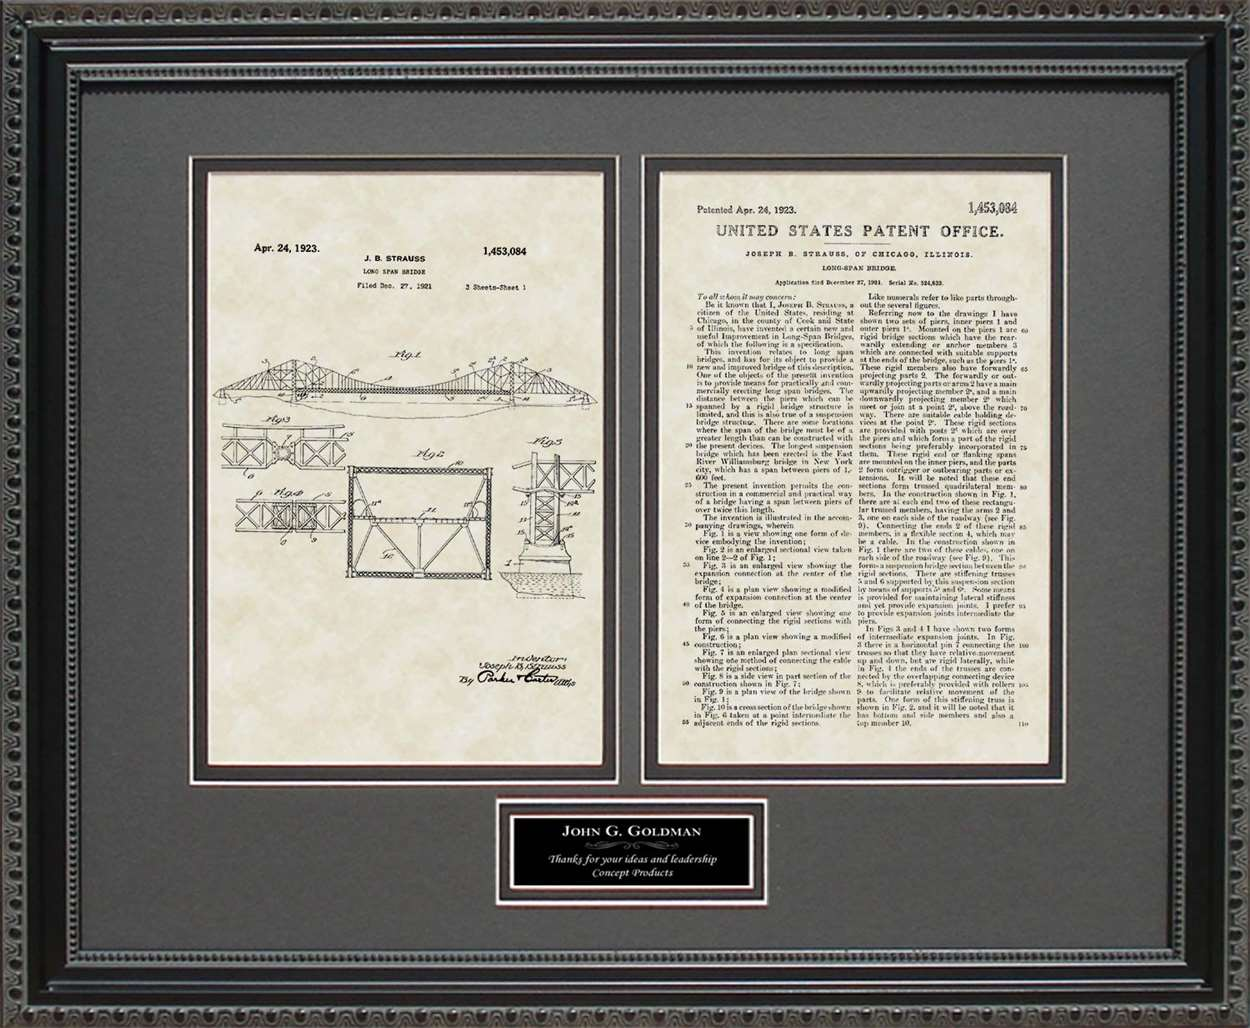 Personalized Long Span/Golden Gate Bridge Patent, Art & Copy, Strauss, 1923